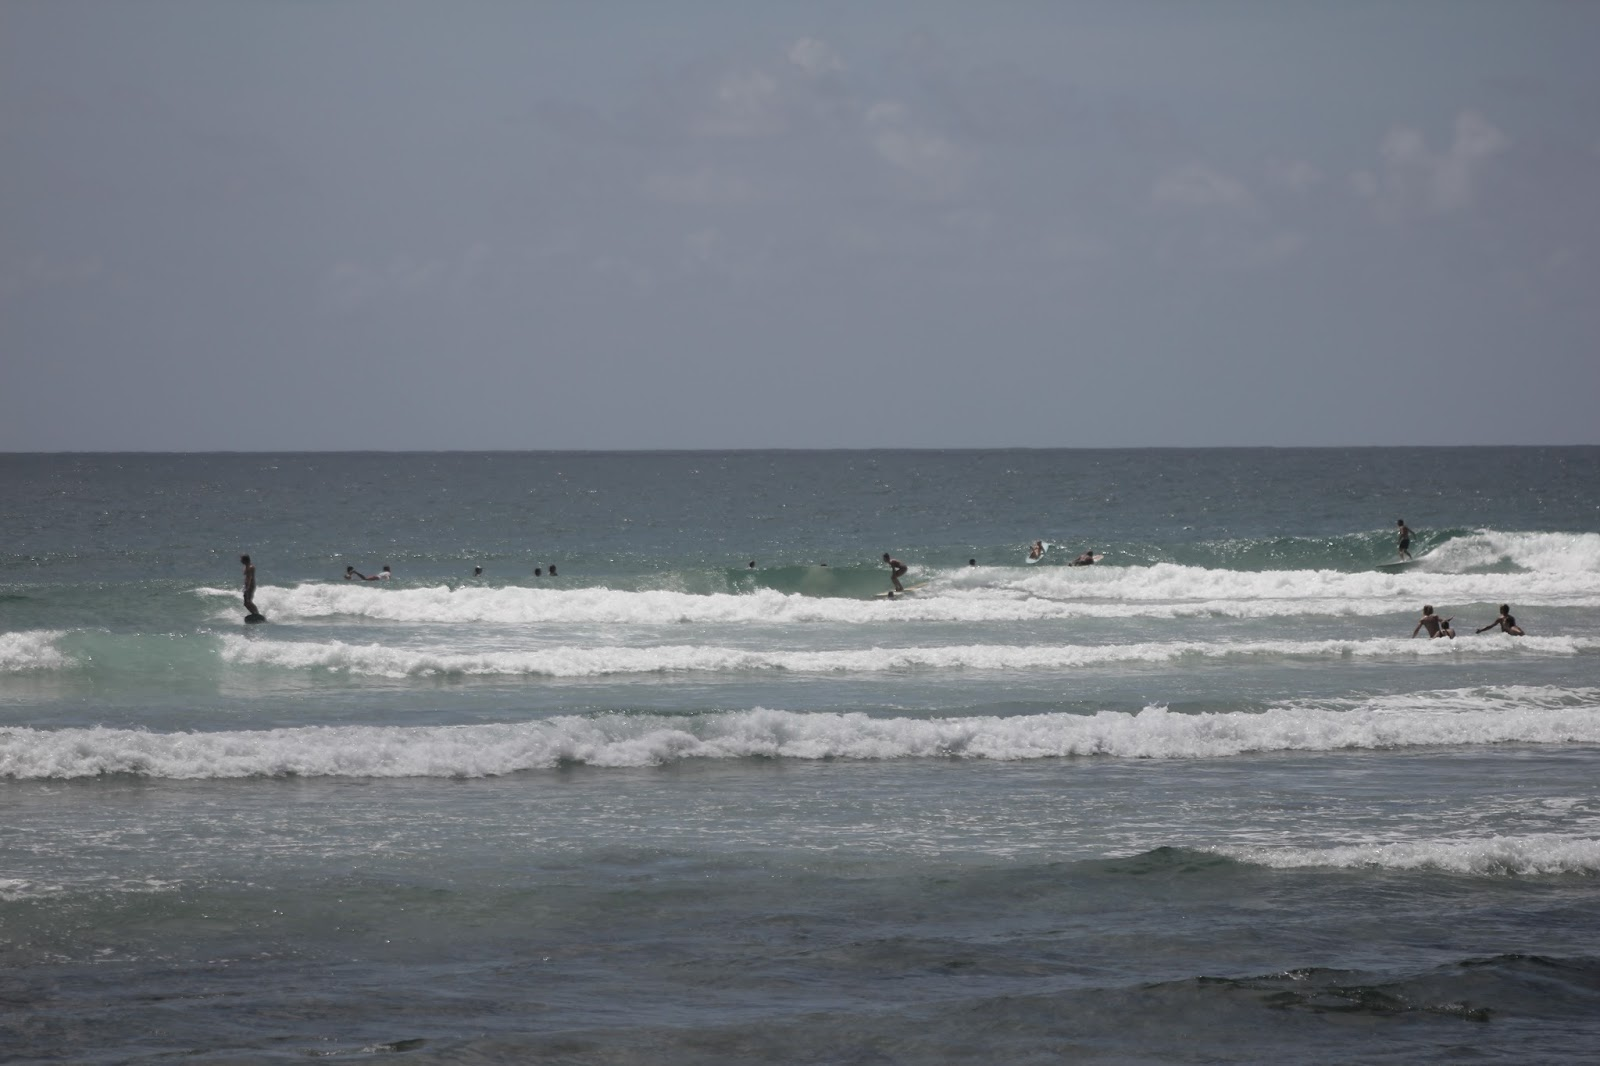 11-03-2016-australia-siebert-surfboards-01